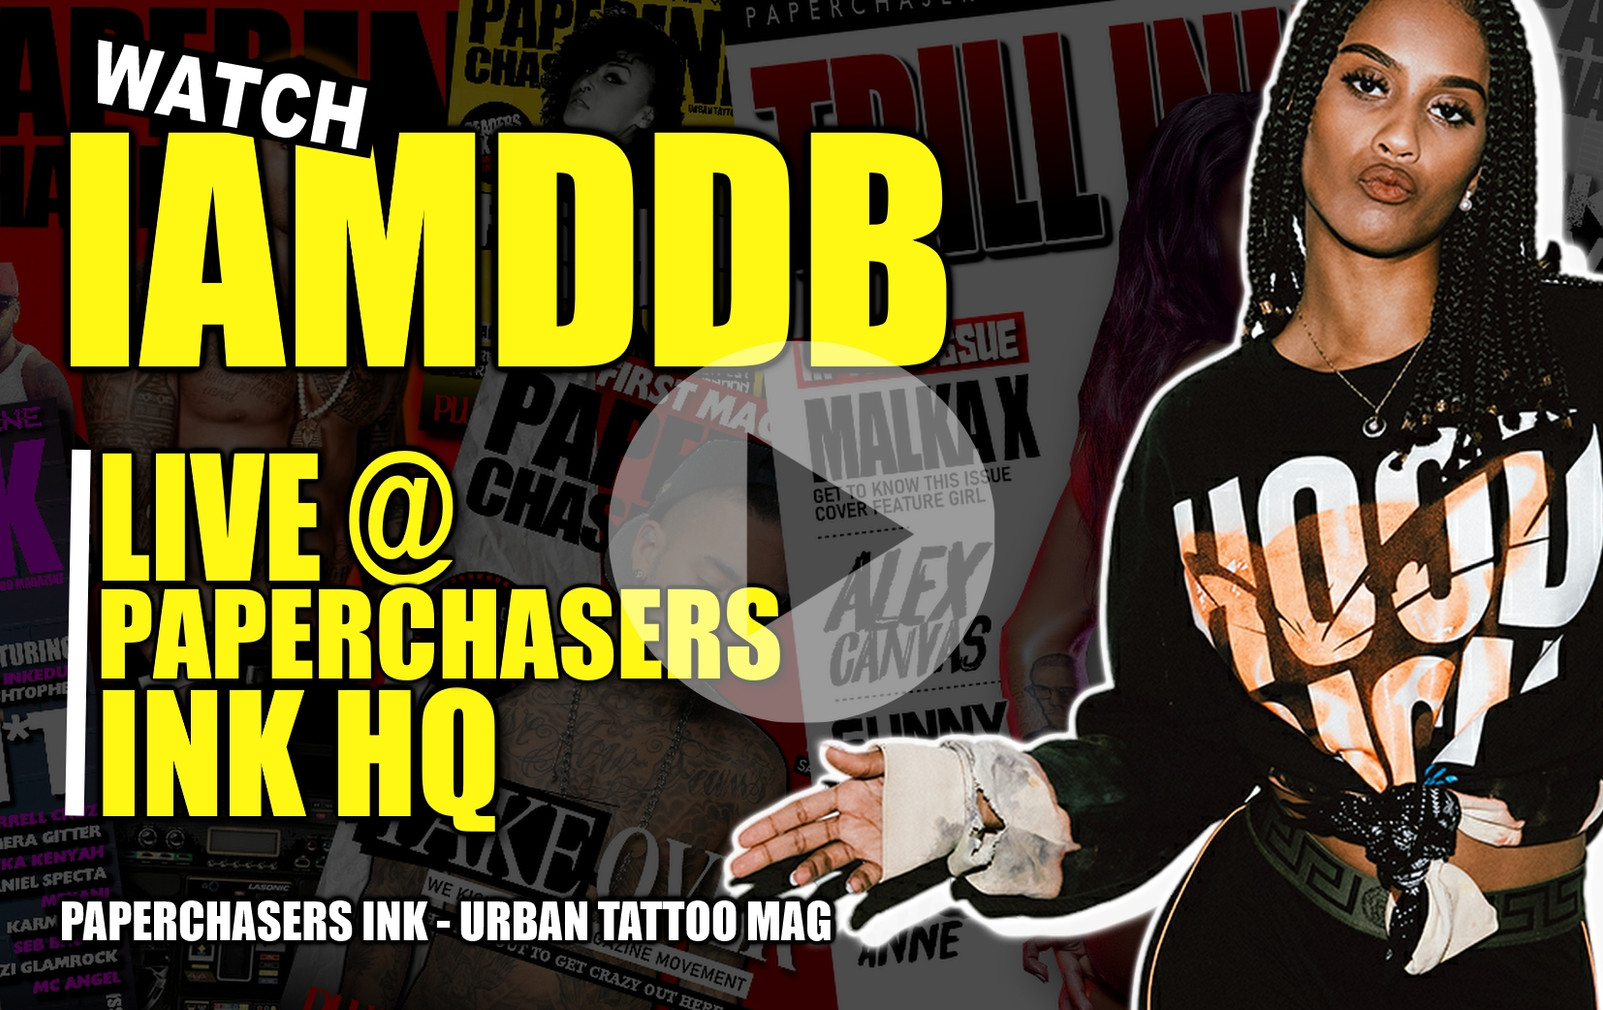 WATCH : IAMDDB - DOOBIES | IN THE PAPERCHASERS INK - MAGAZINE HQ